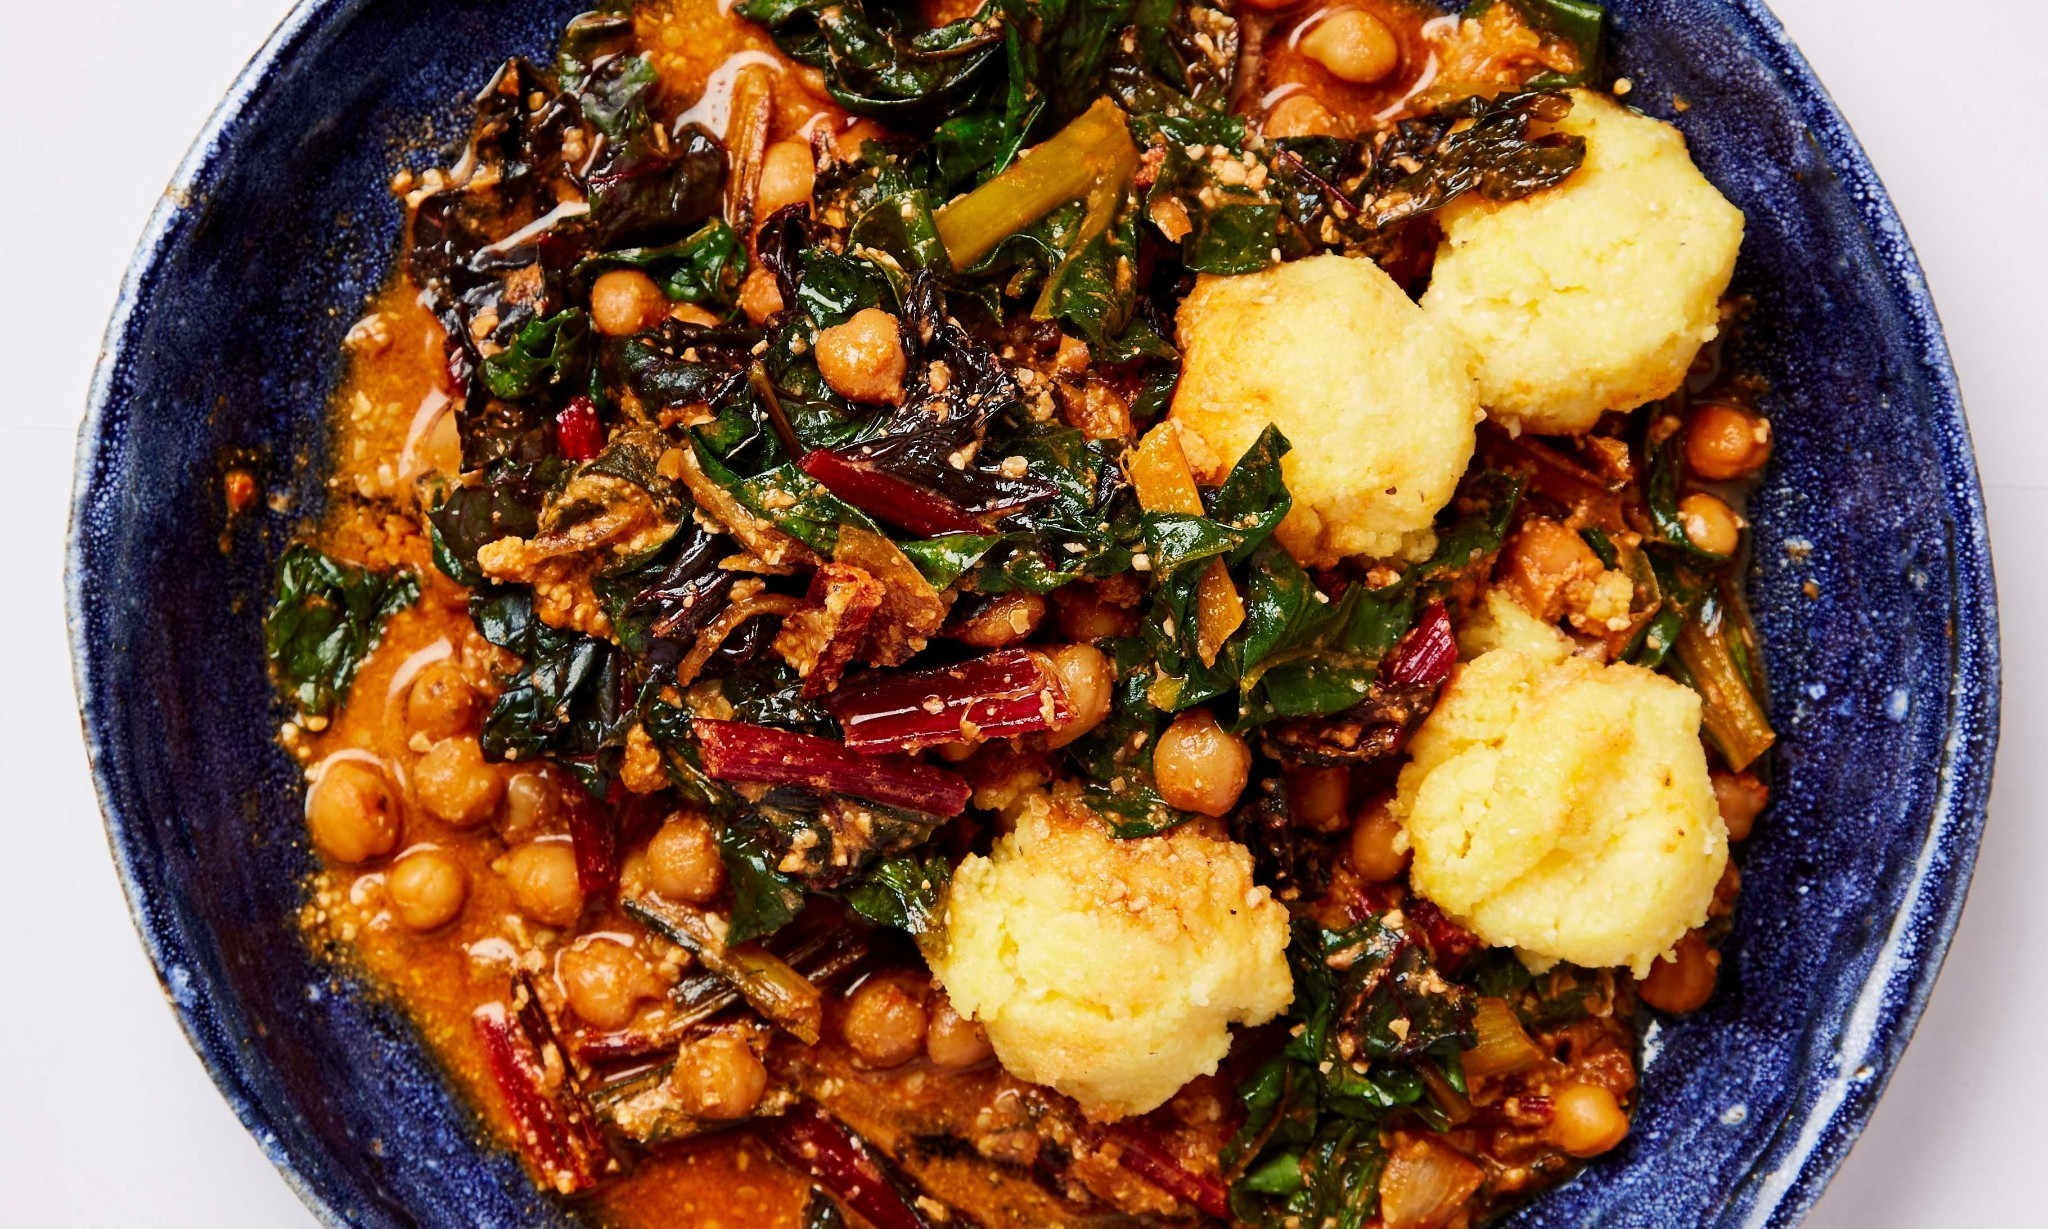 Meera Sodha's vegan recipe for chickpea, chard and sunflower seed stew